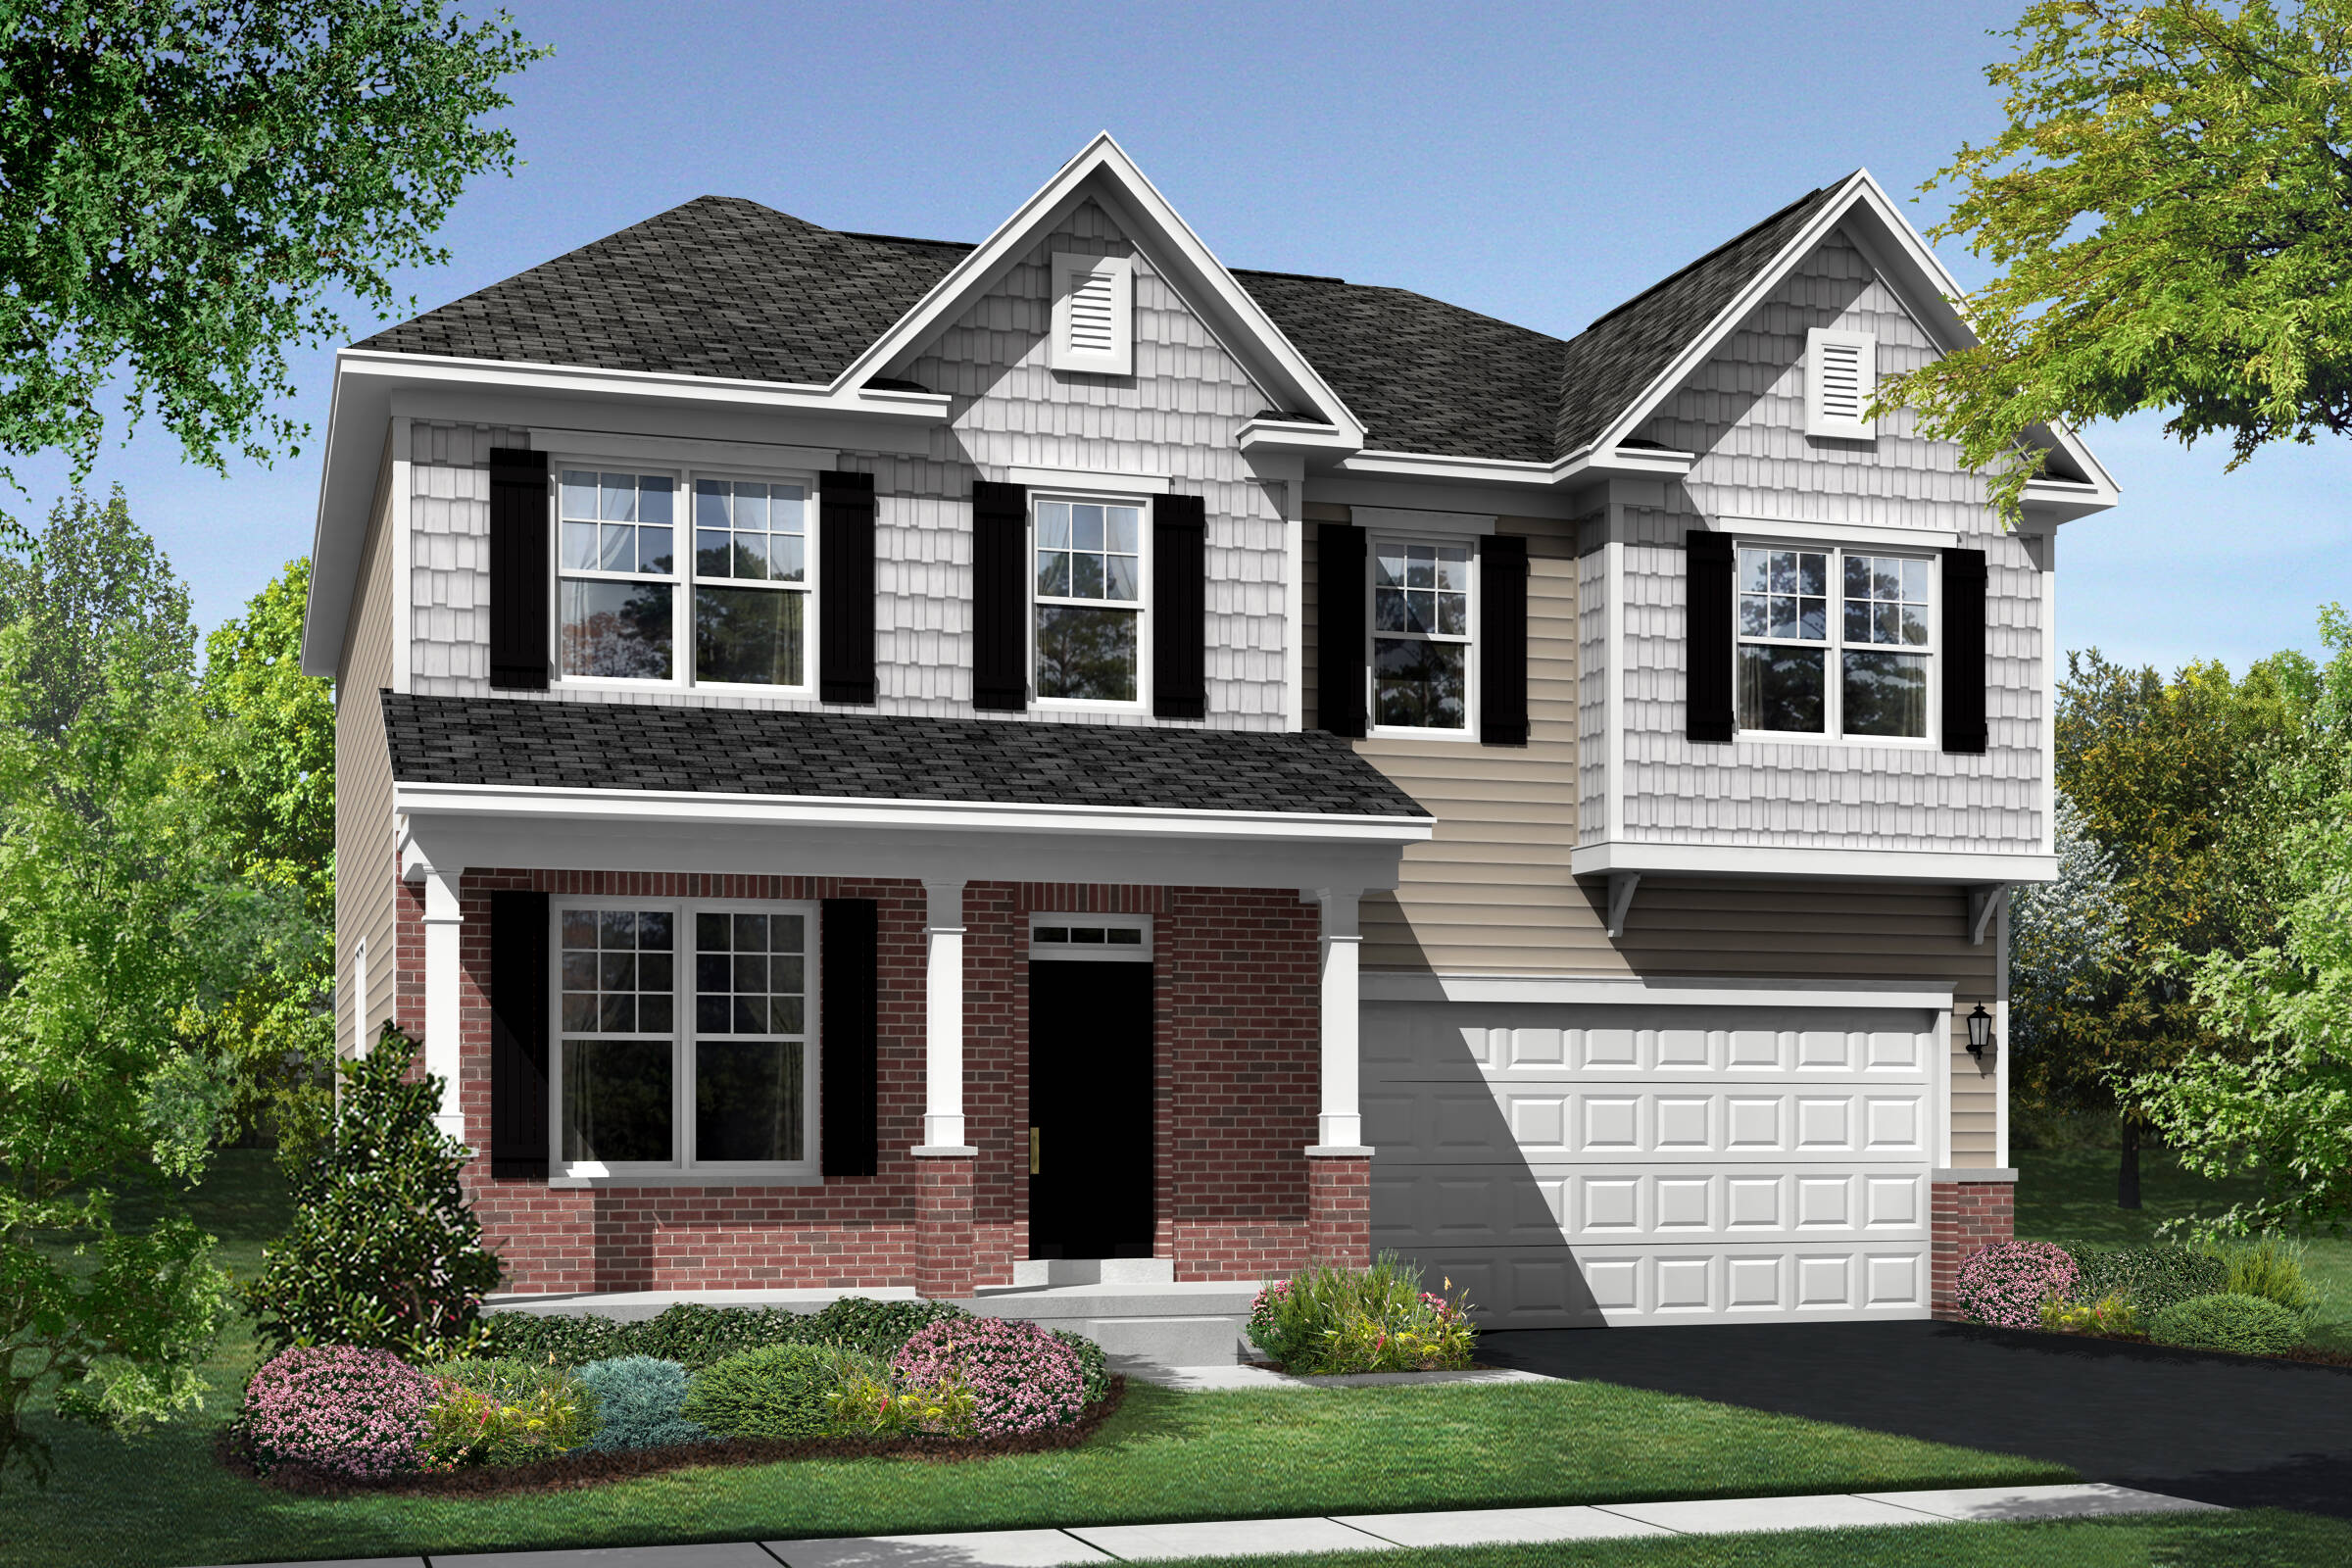 Tomasen FB elevations at Orchard Meadows